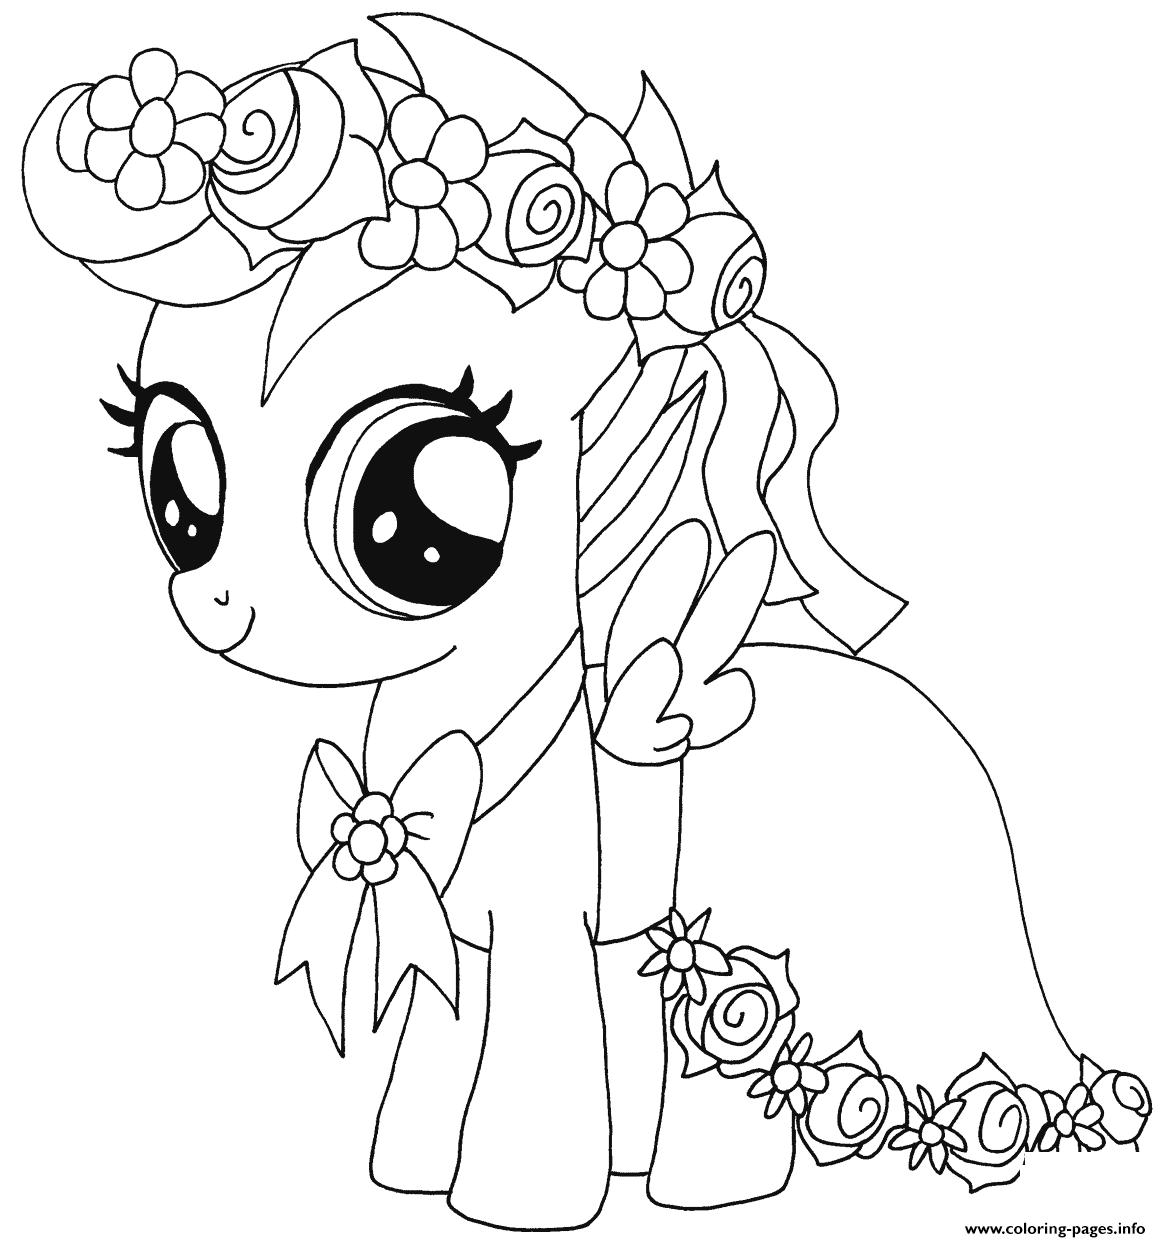 baby my little pony coloring pages kids page my little pony friendship is magic baby baby coloring pony pages my little